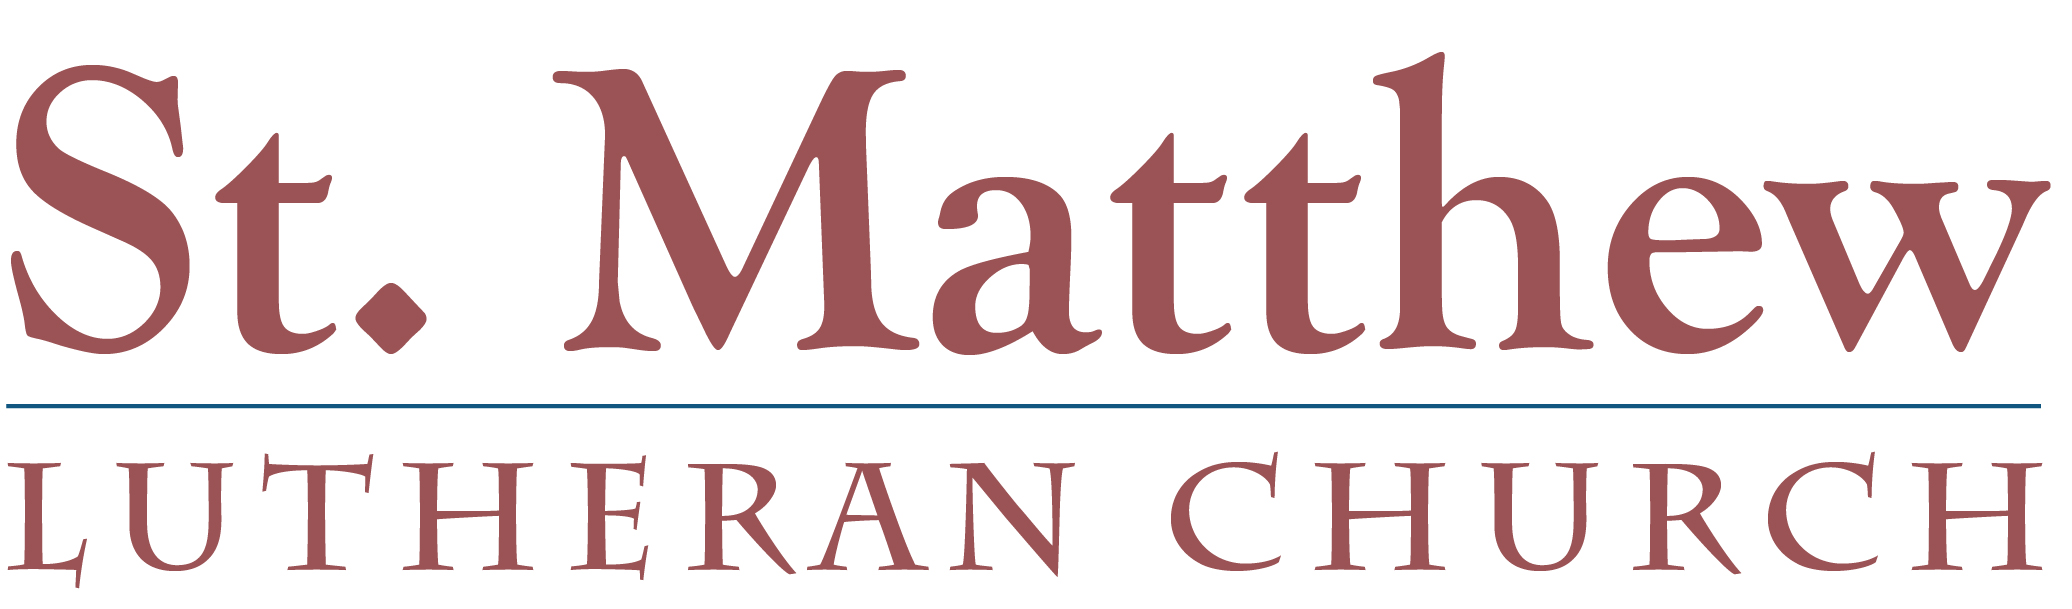 St. Matthew Name